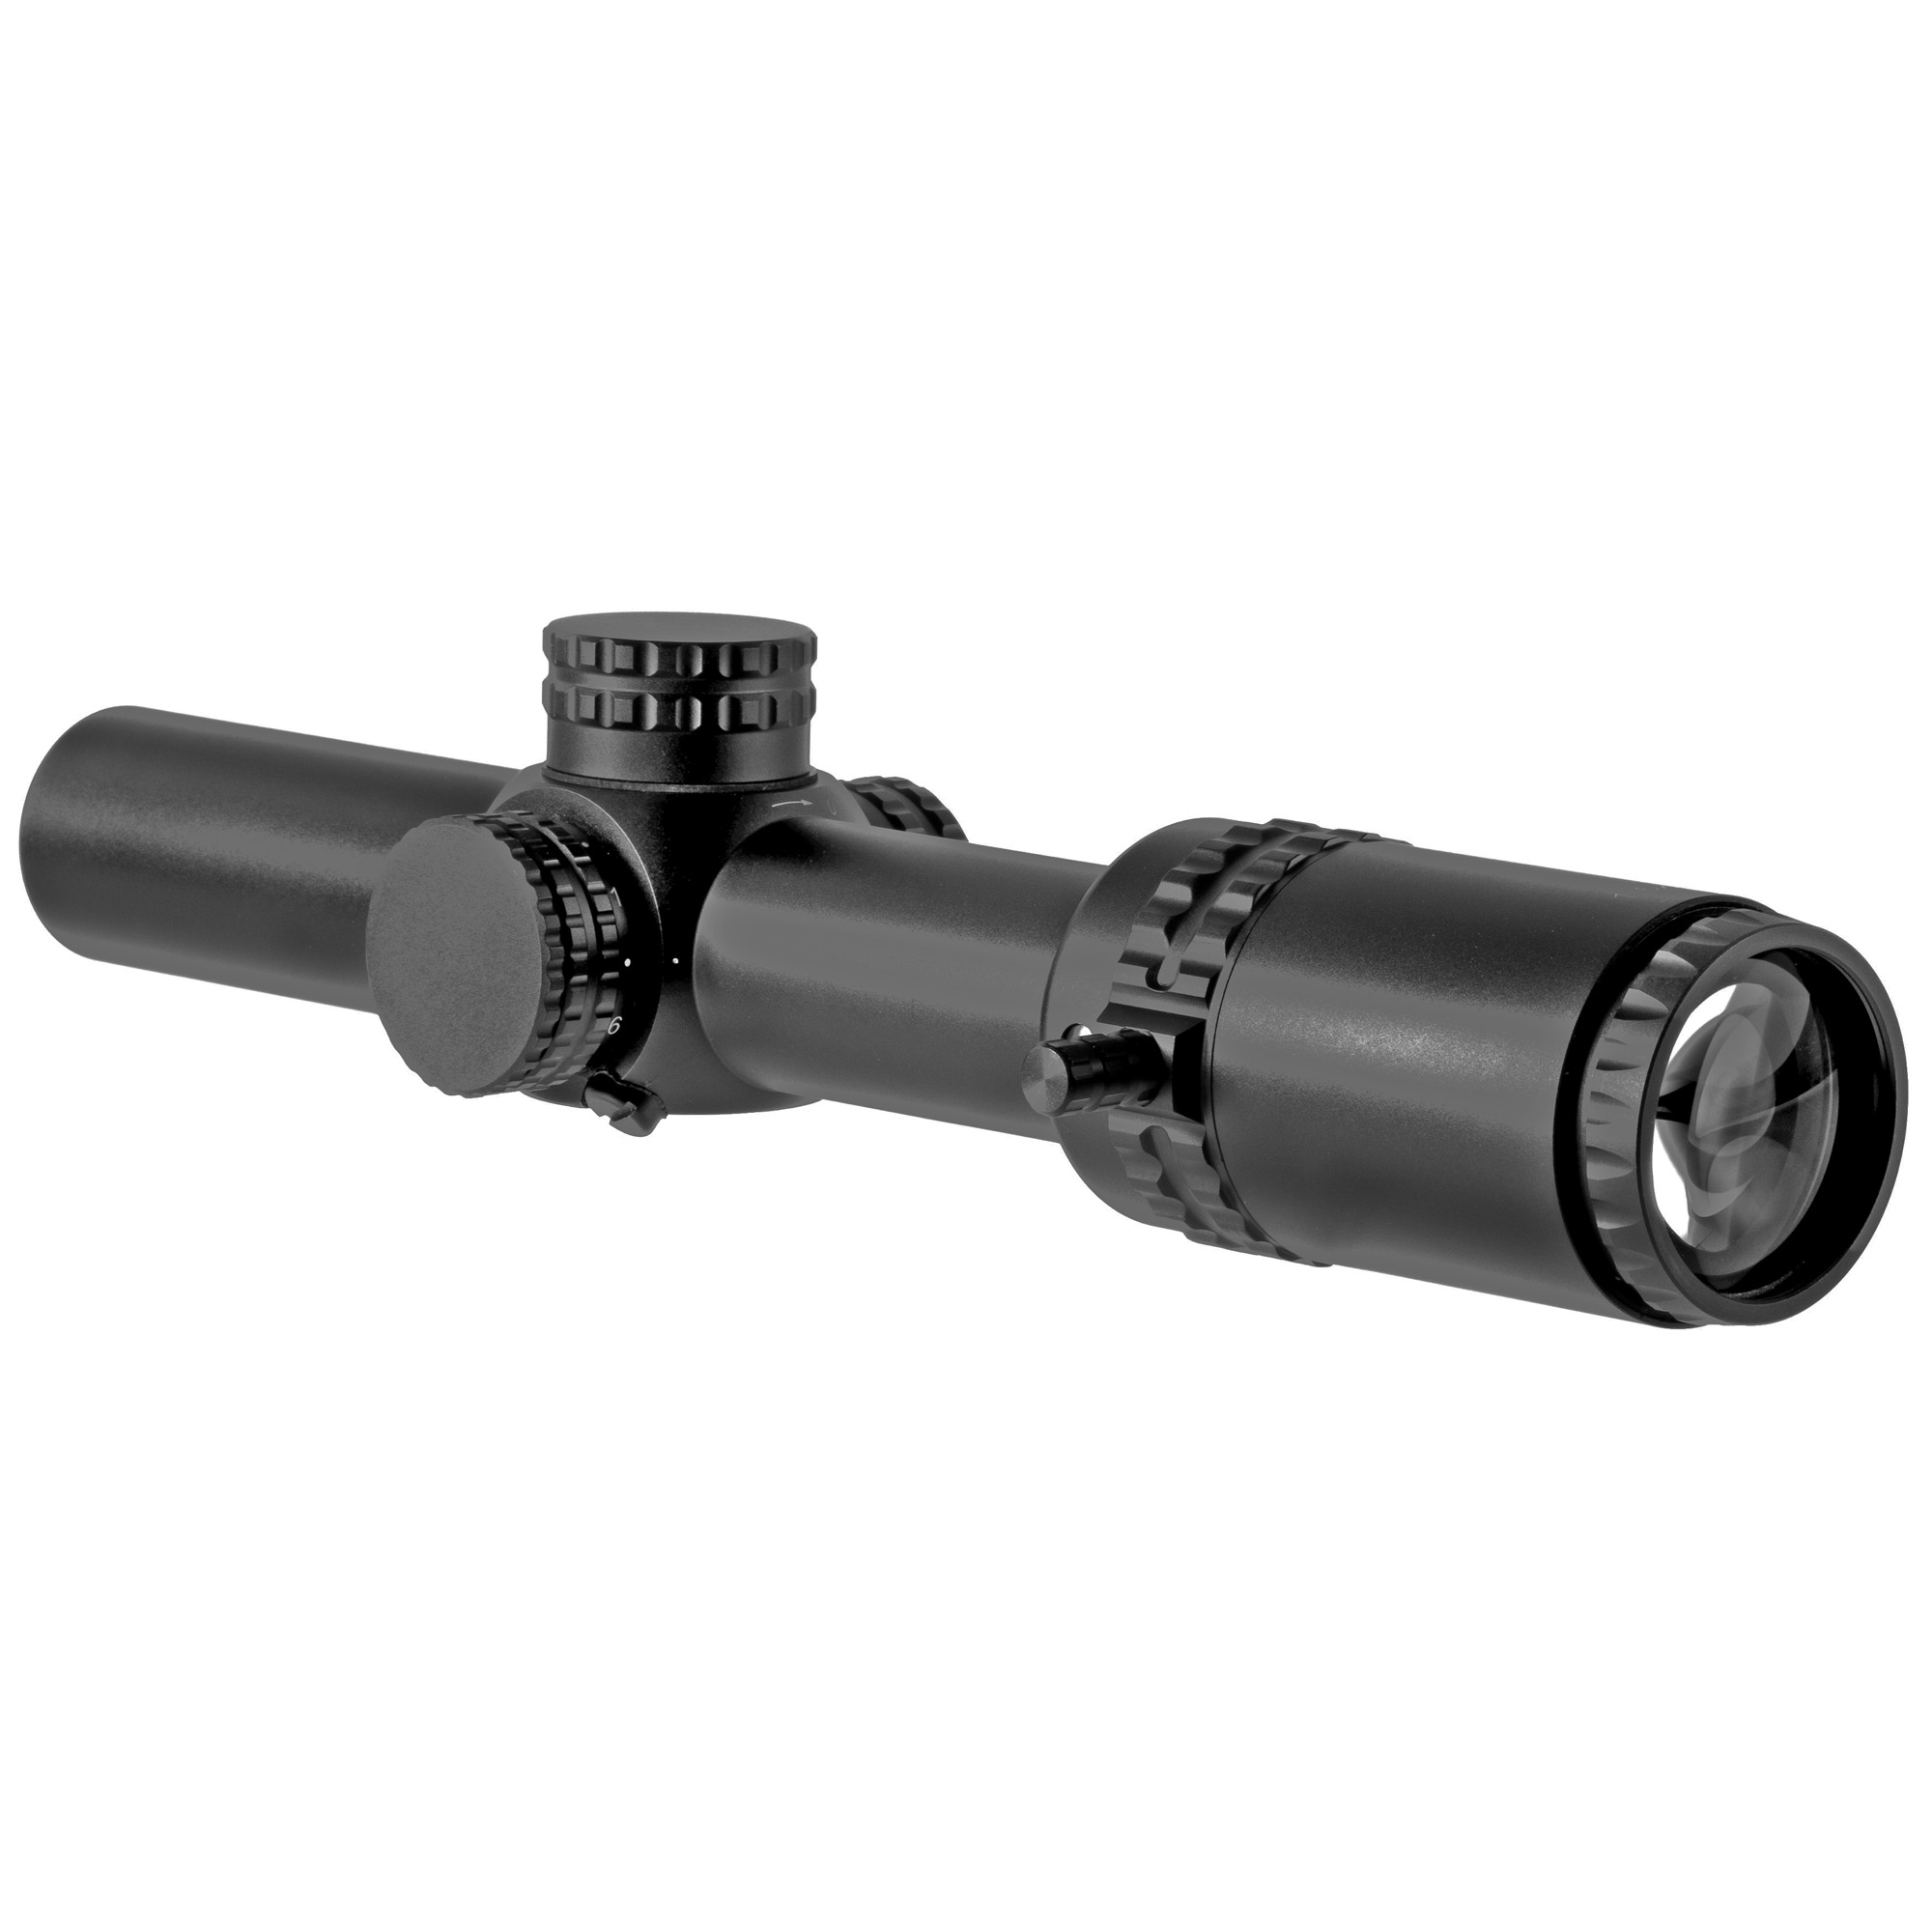 Four Peaks Scope 1-6x24